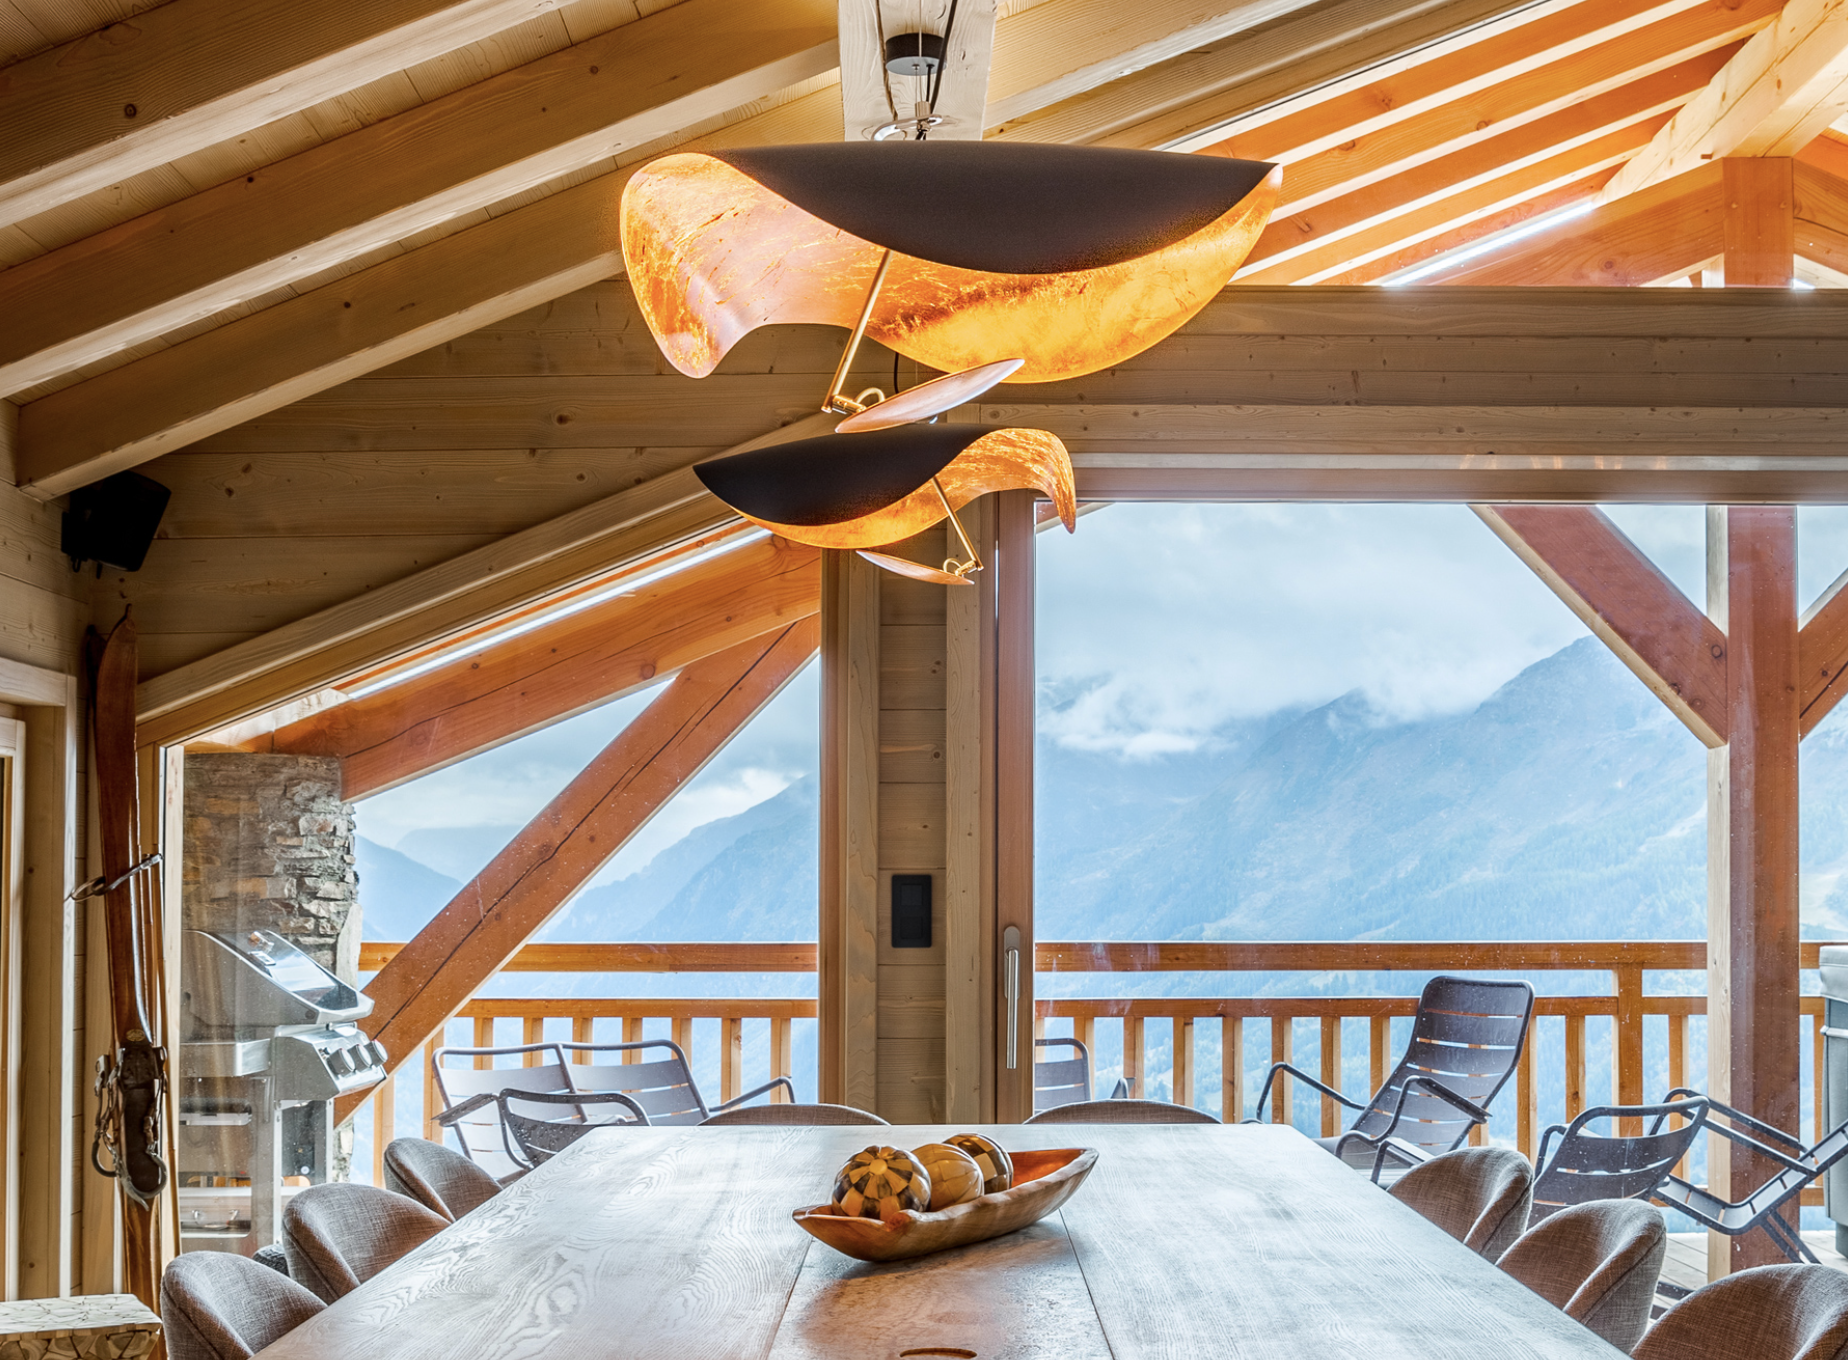 Lederam Manta S1 Pendant Lamp - Lederam embodies the accuracy of the motion required to draw a line. The warm, softly coloured disks surround a LED module with an ultra-flat shape, which creates thin lamps and suspended forms with curved, sinuous lines.   Matter of Stuff